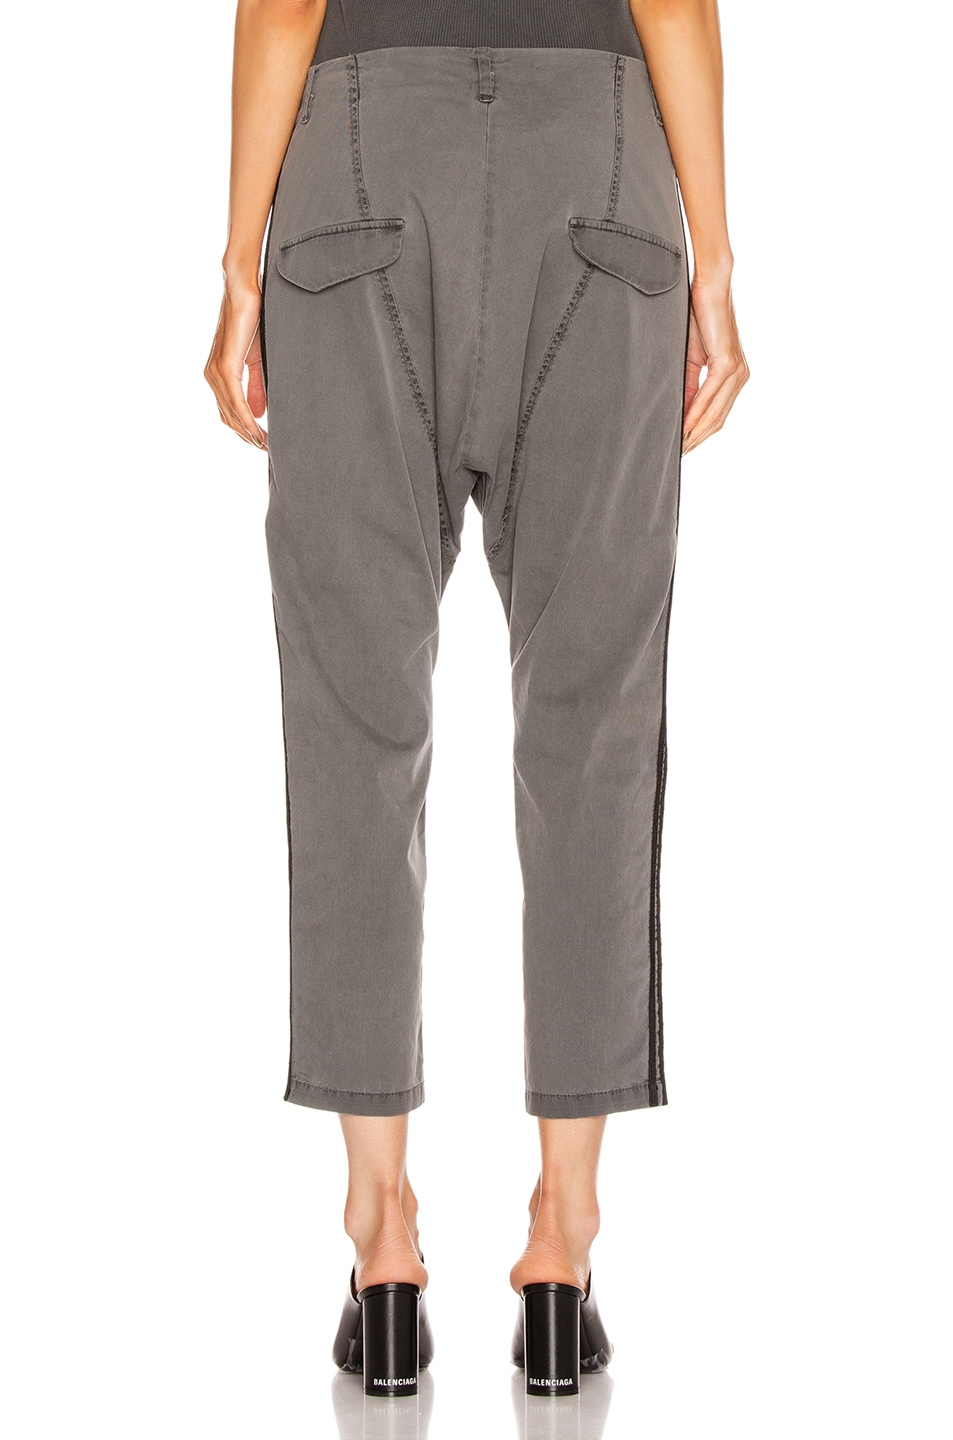 Image 4 of NILI LOTAN Paris Pant with Double Tape in Charcoal & Black